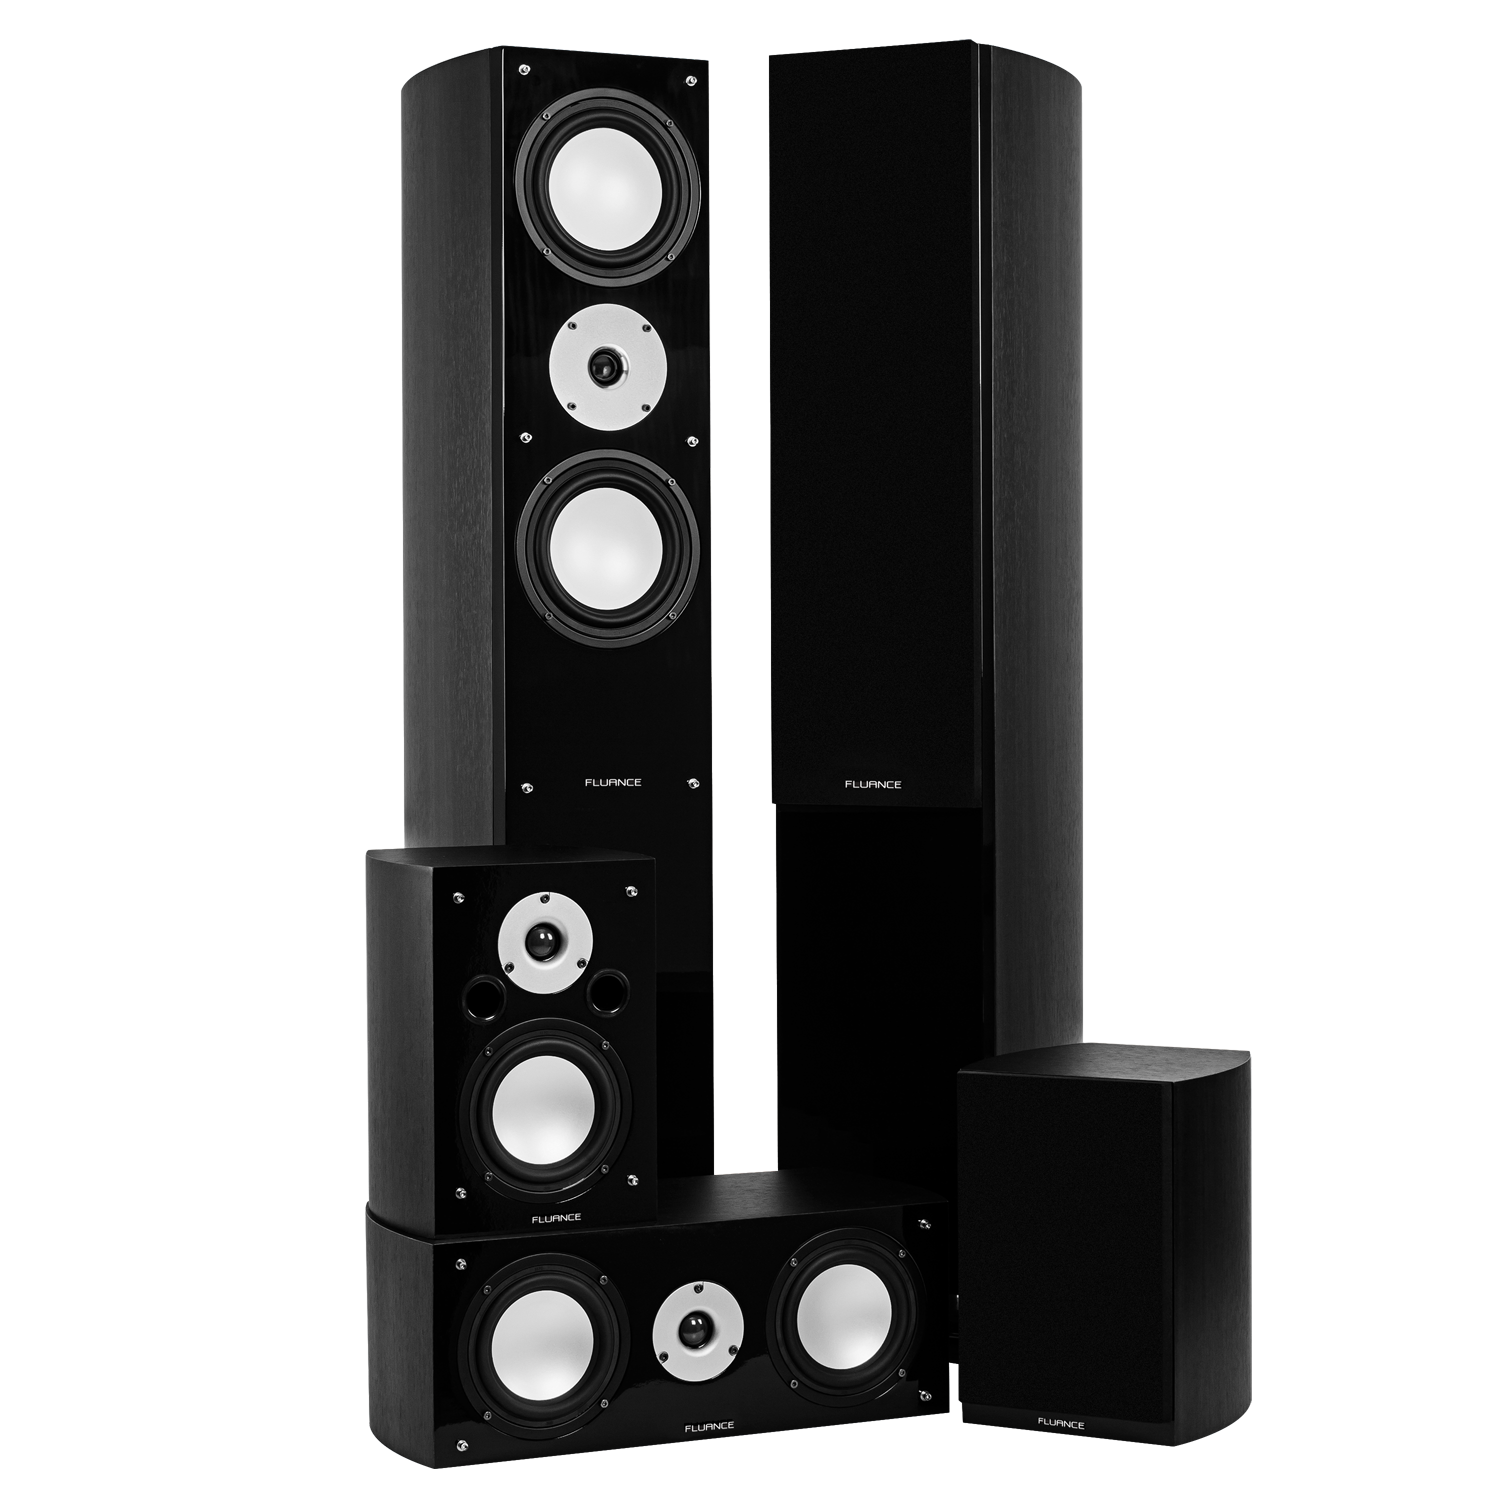 High Performance 5 Speaker Surround Sound Home Theater System - Black Ash